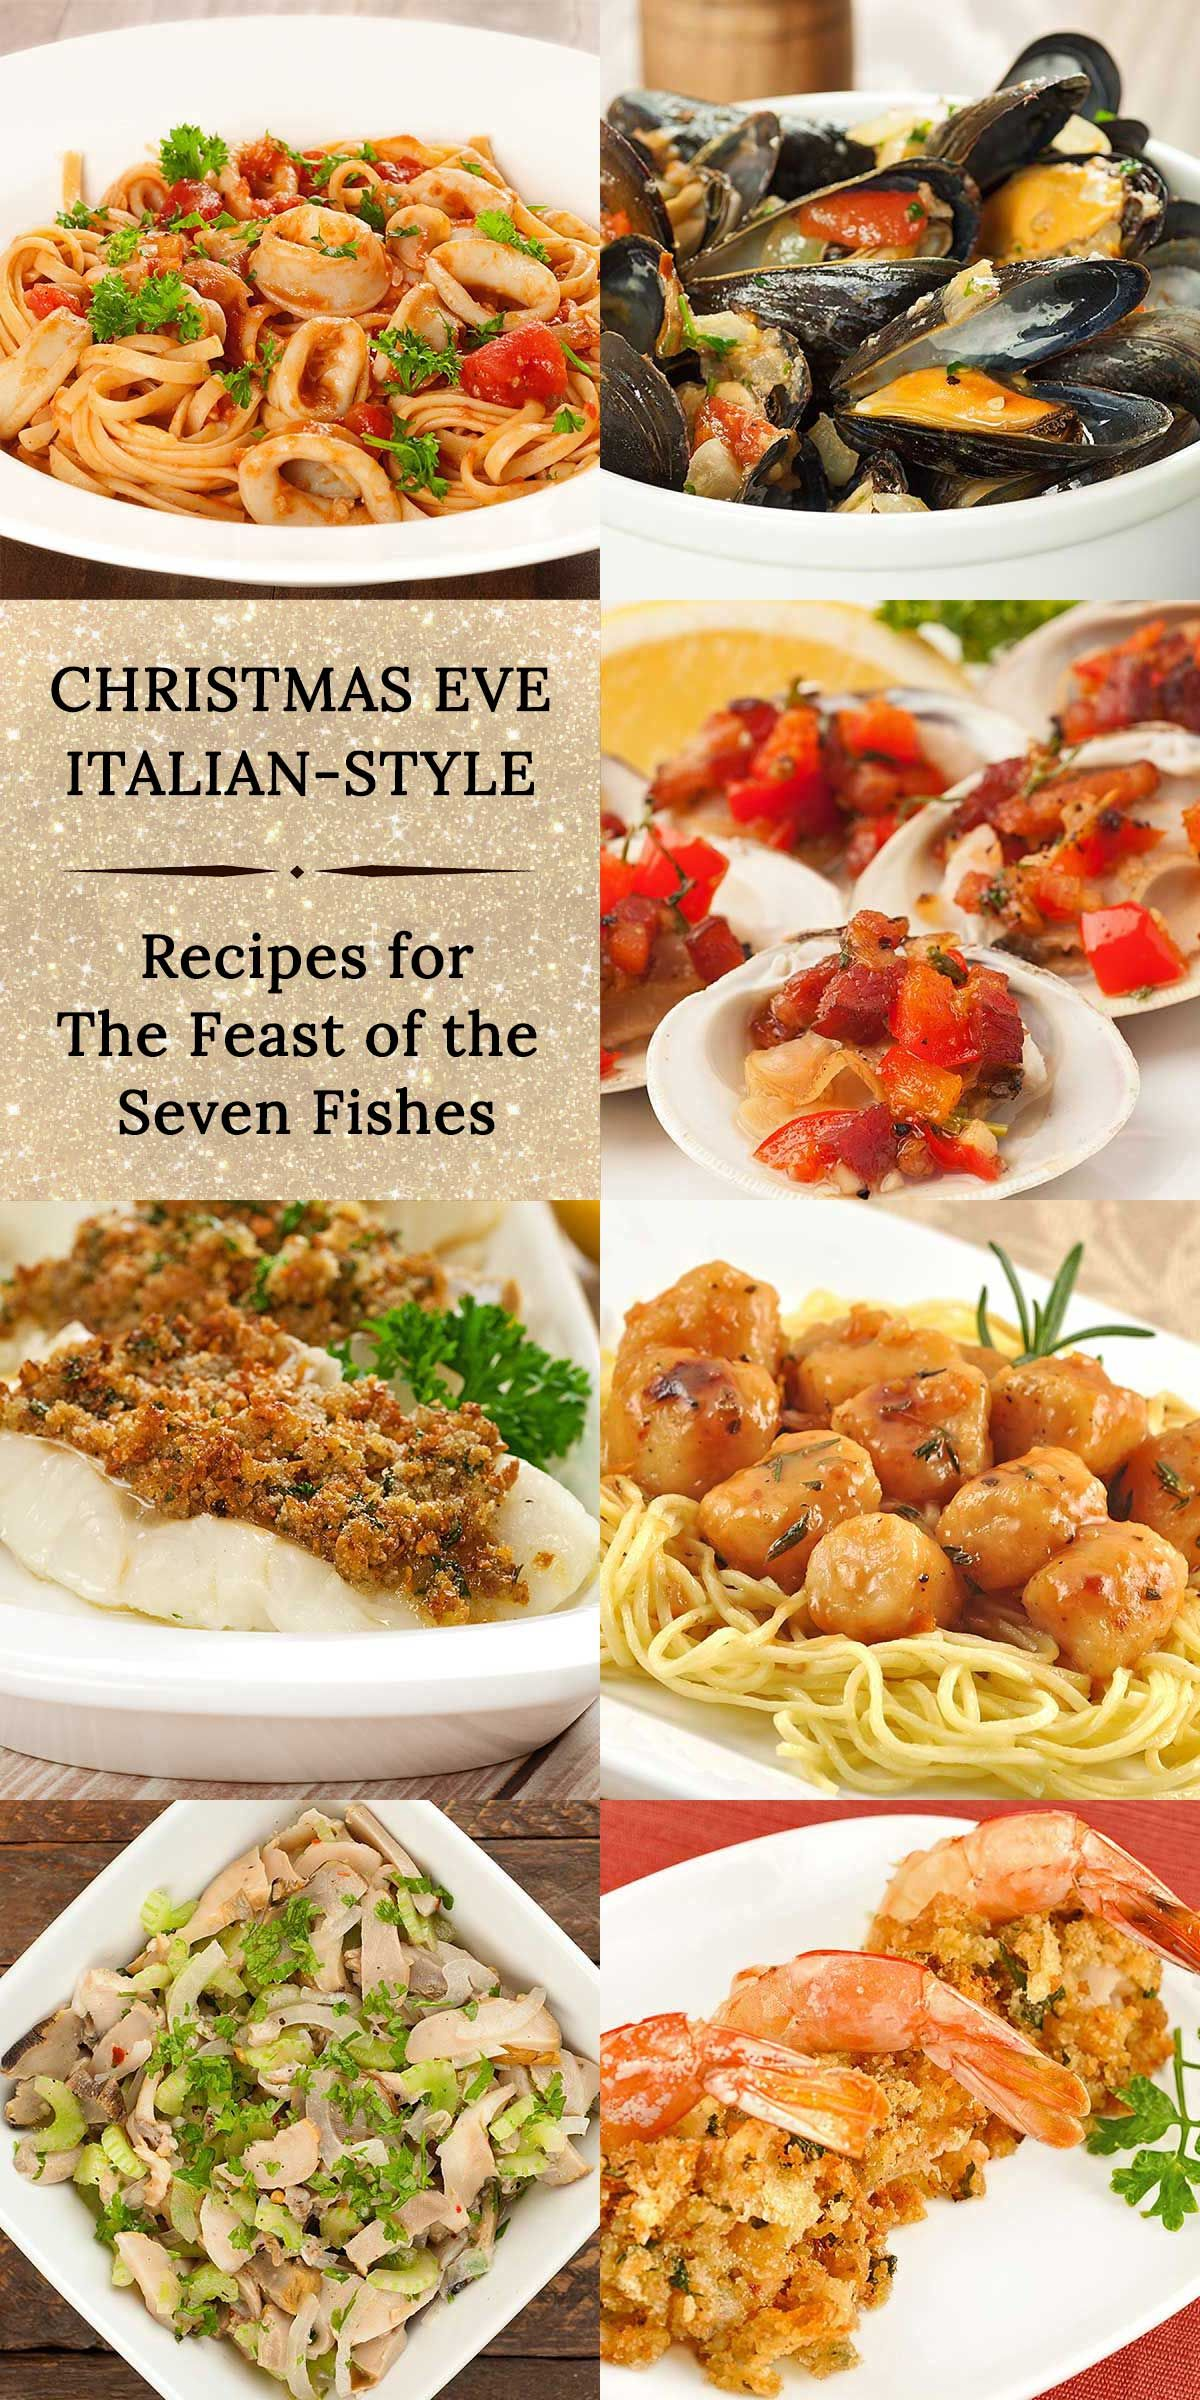 7 Fishes Christmas Eve Italian Recipes.Holiday Menu An Italian Christmas Eve Feast Of The Seven